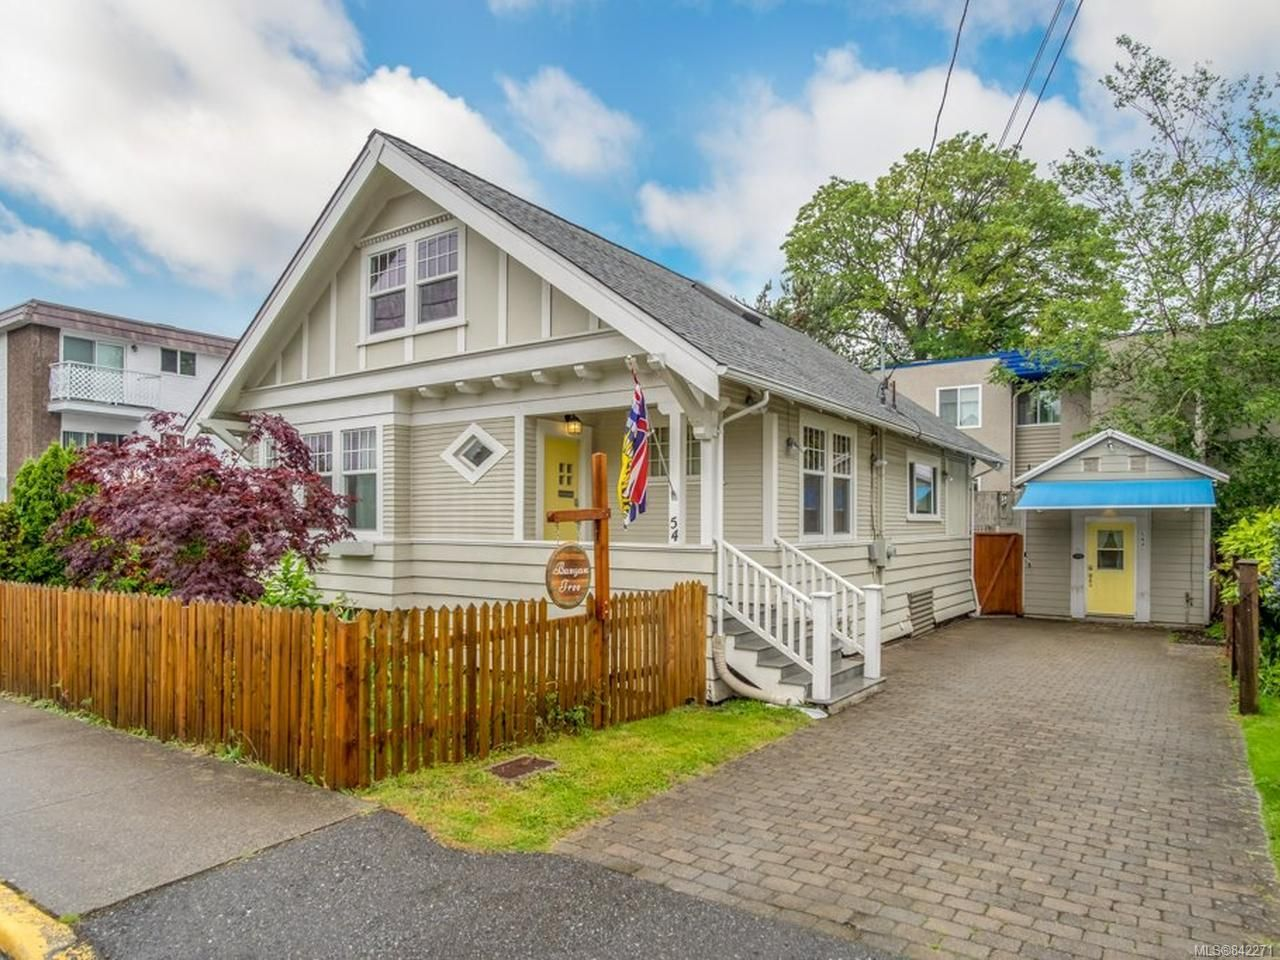 Main Photo: 54 Prideaux St in NANAIMO: Na Old City House for sale (Nanaimo)  : MLS®# 842271